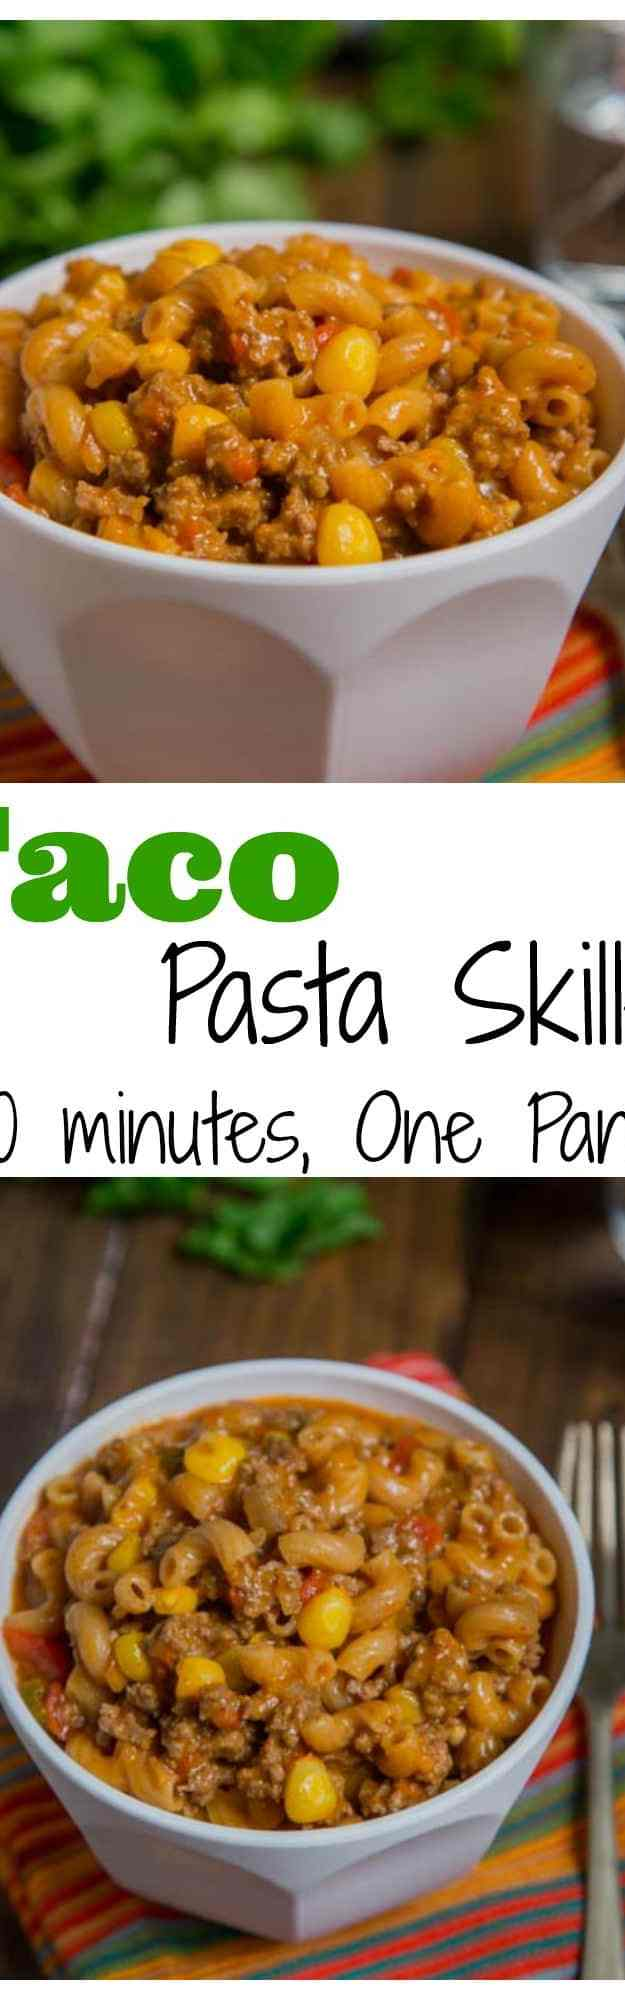 Taco Pasta Skillet - All the flavors of taco night in a one pan meal, ready in 20 minutes! Homemade version of taco Hamburger Helper, with just a few staple ingredients.